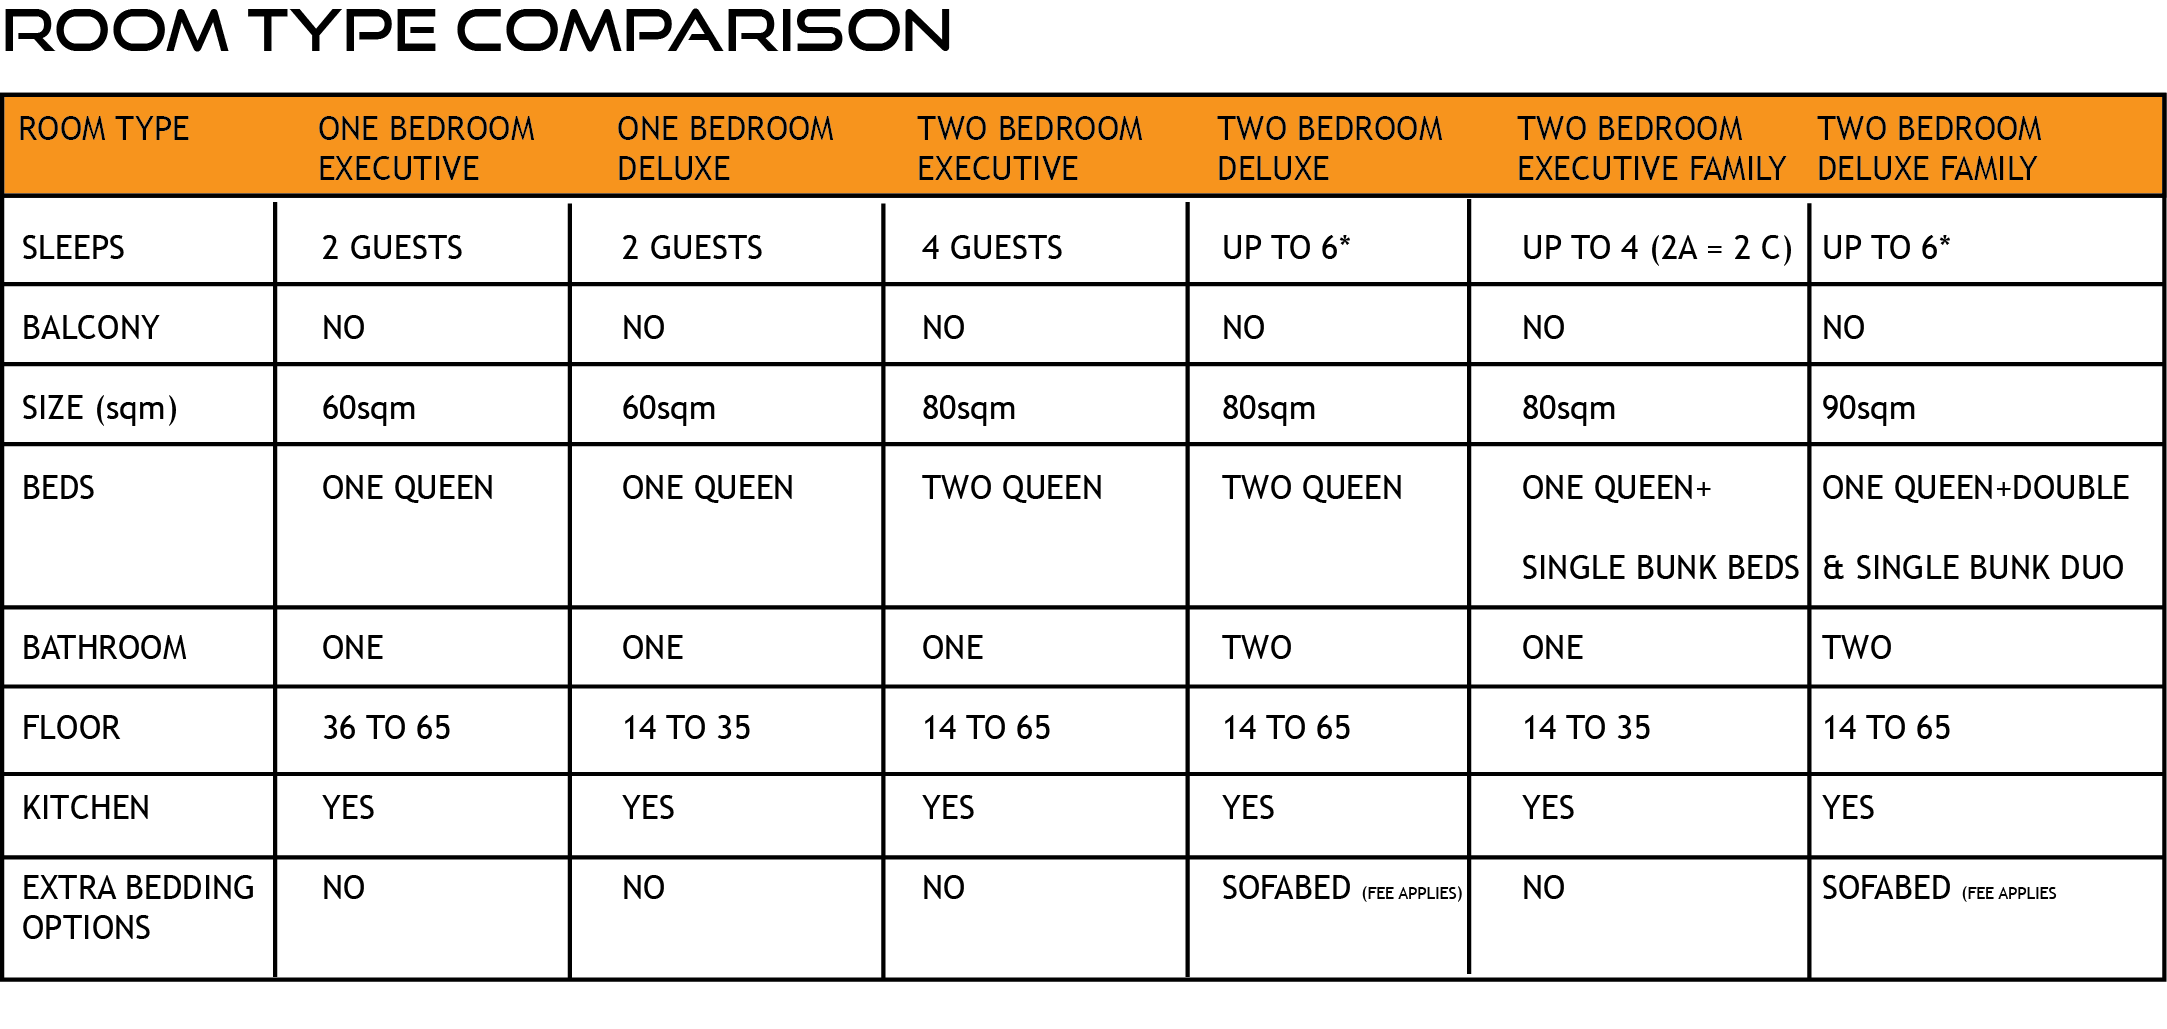 ROOM COMPARISON TABLE COLLINS STREET.png